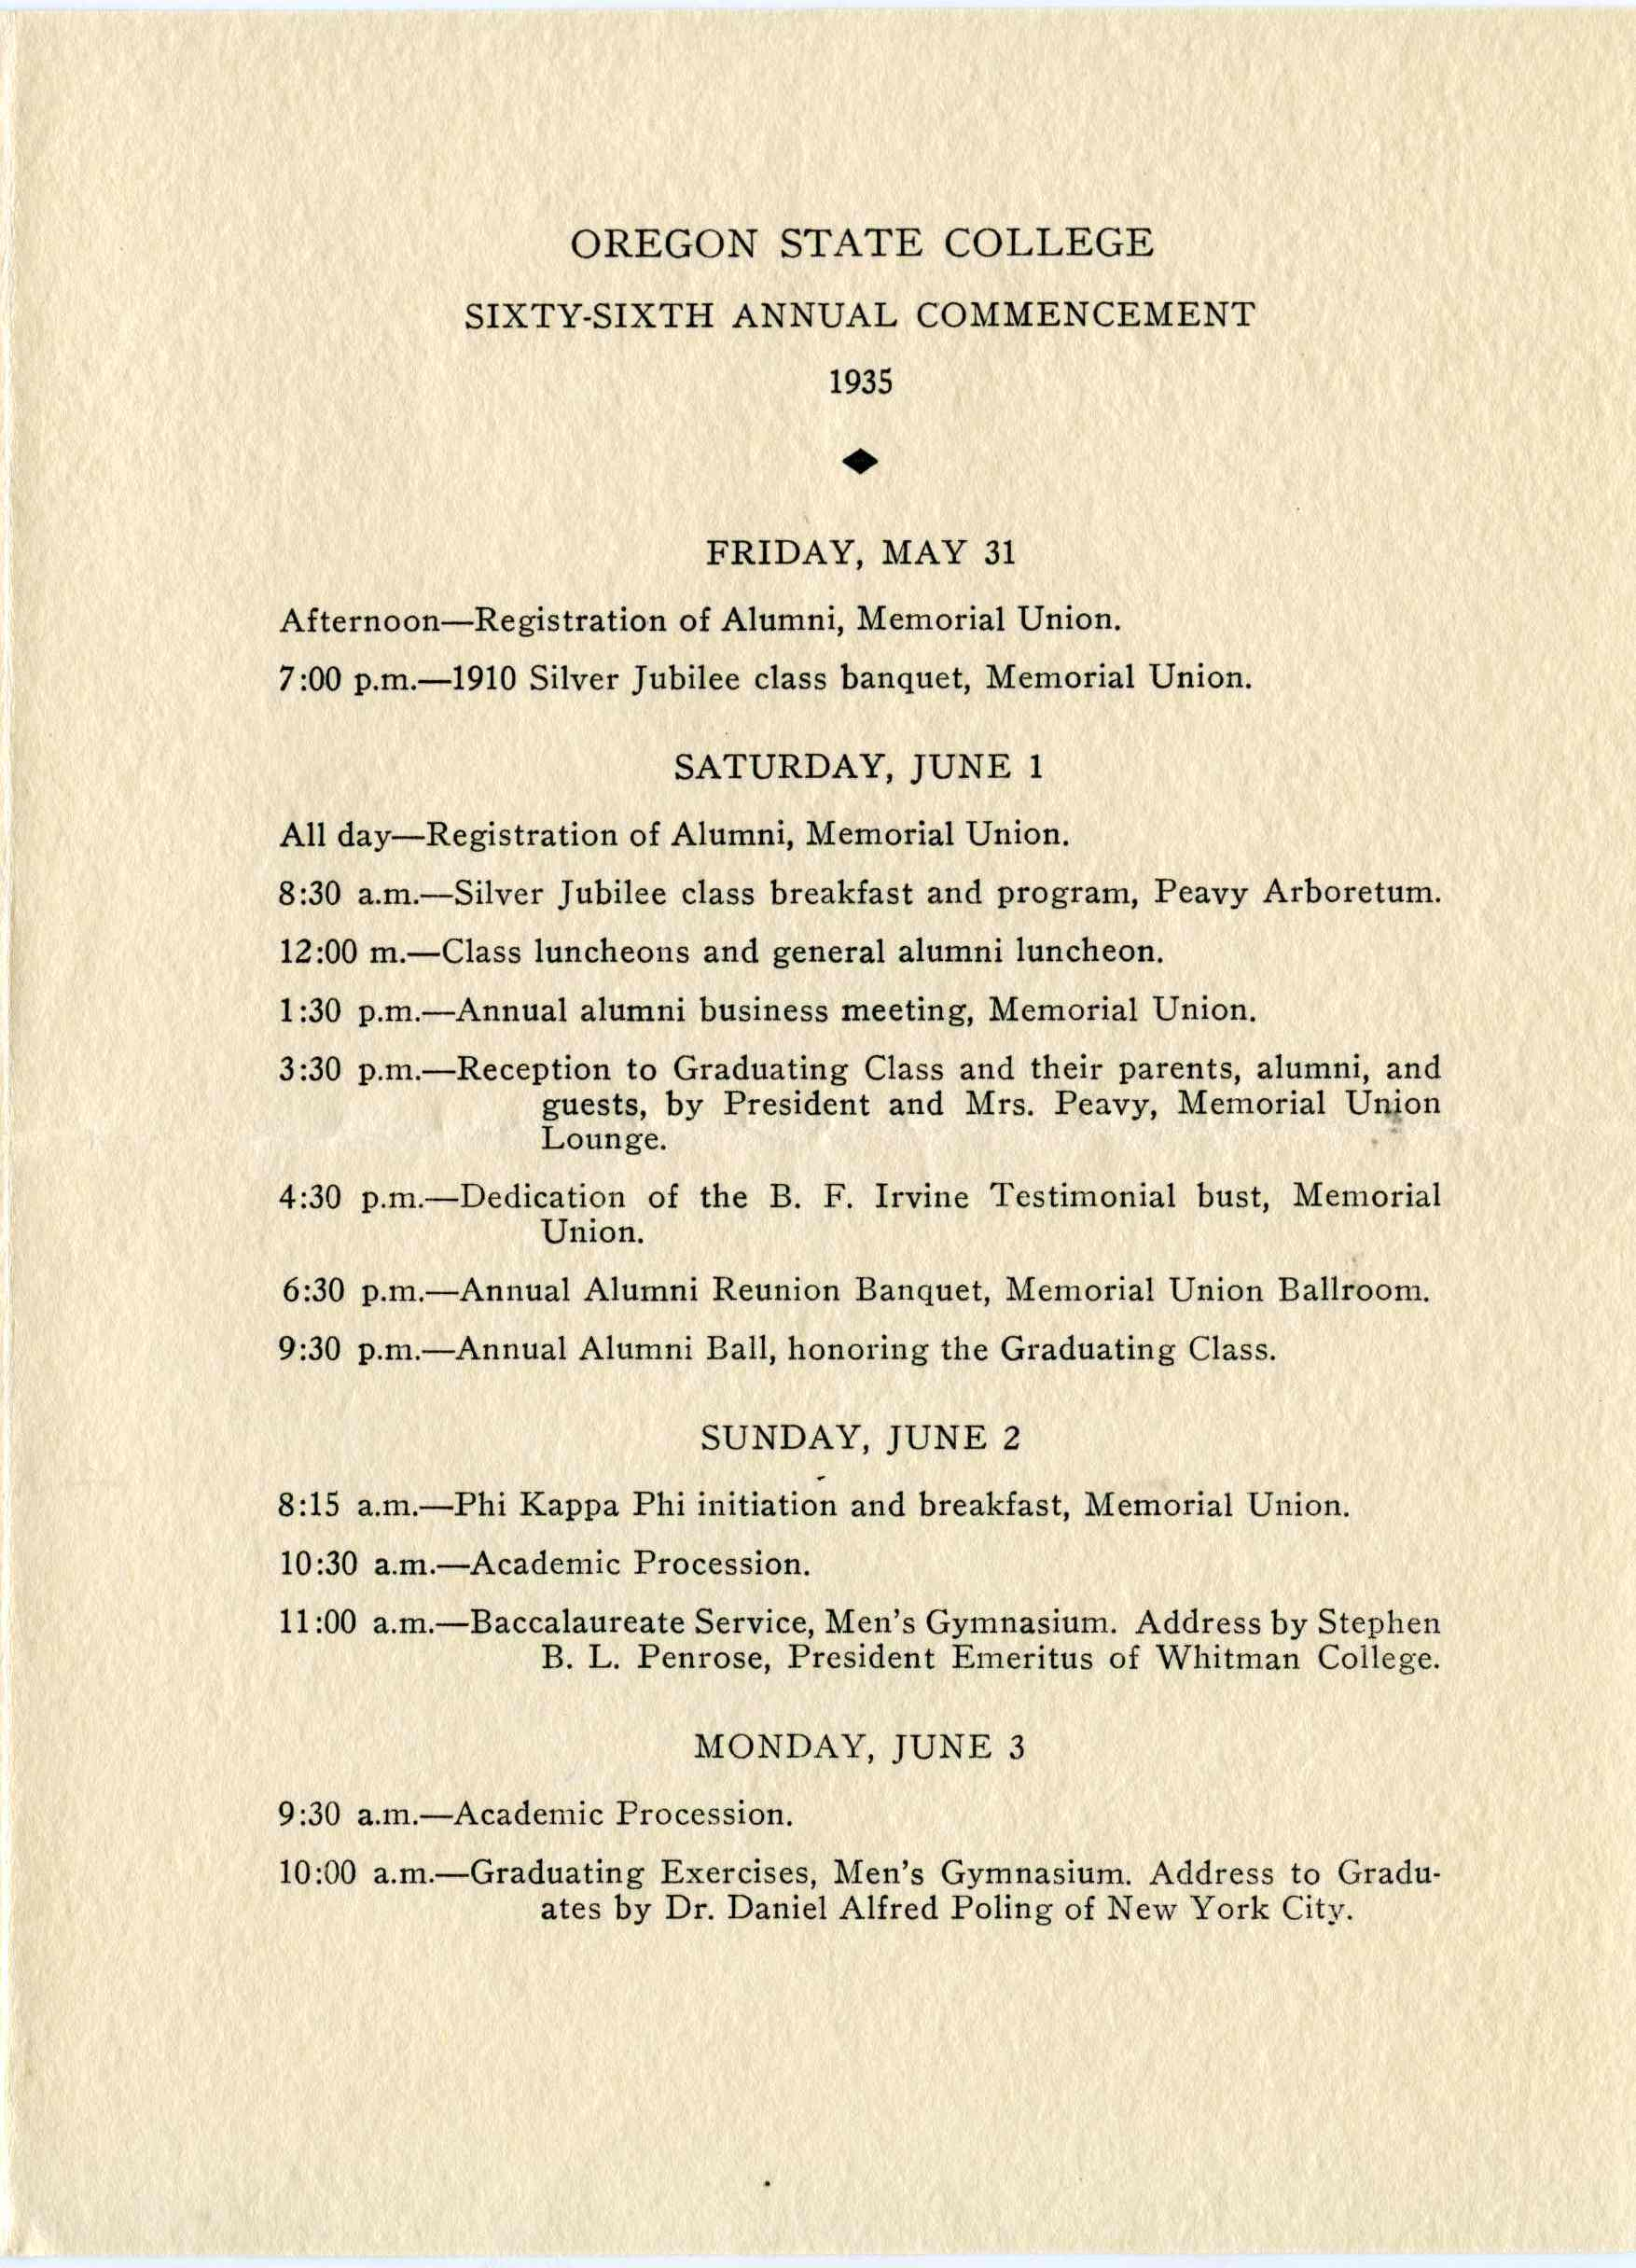 Photo of 1935 Commencement Schedule